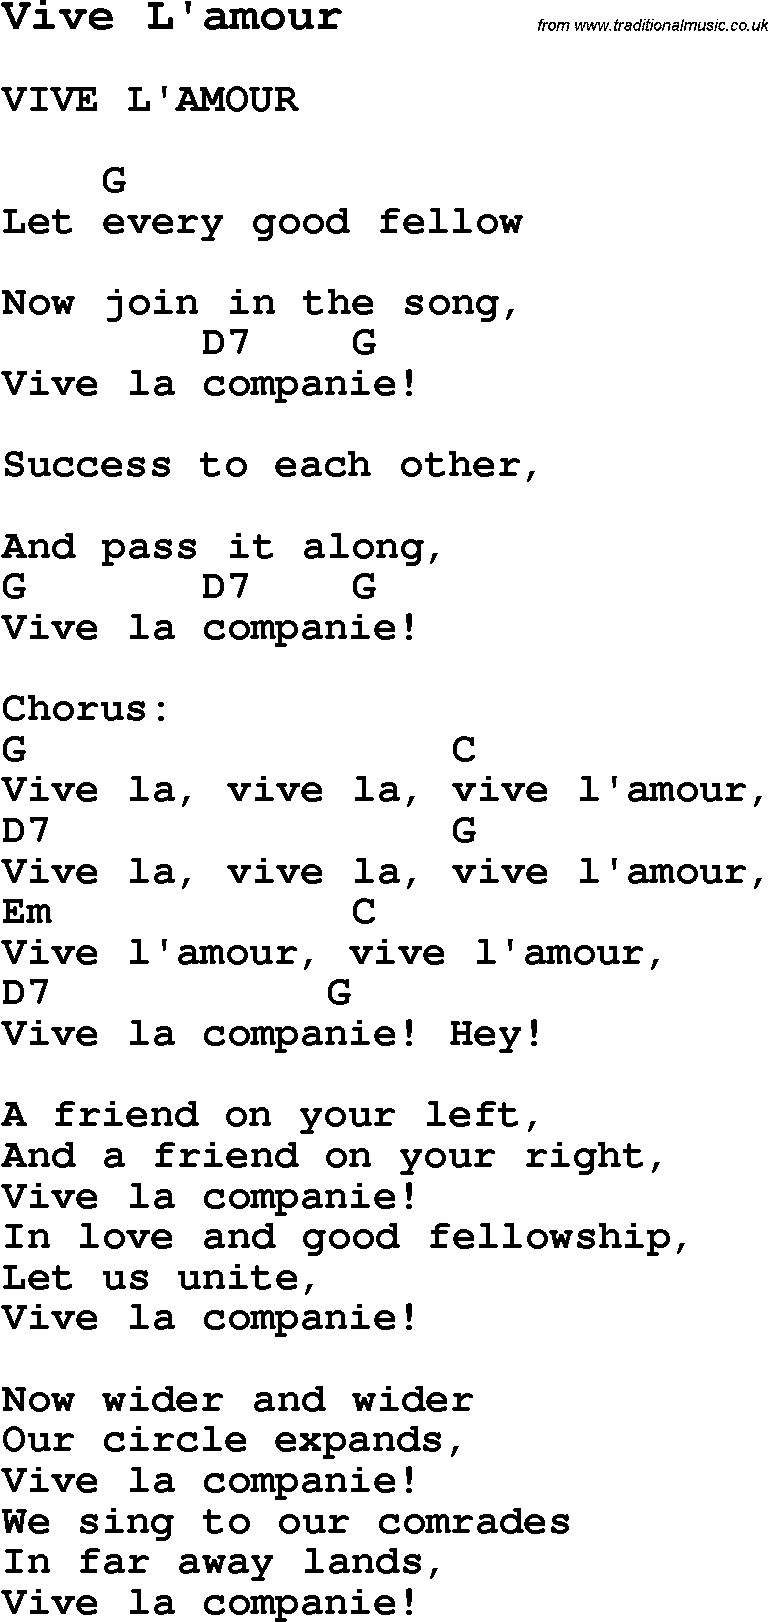 Summer Camp Song, Vive L'amour, with lyrics and chords for ...